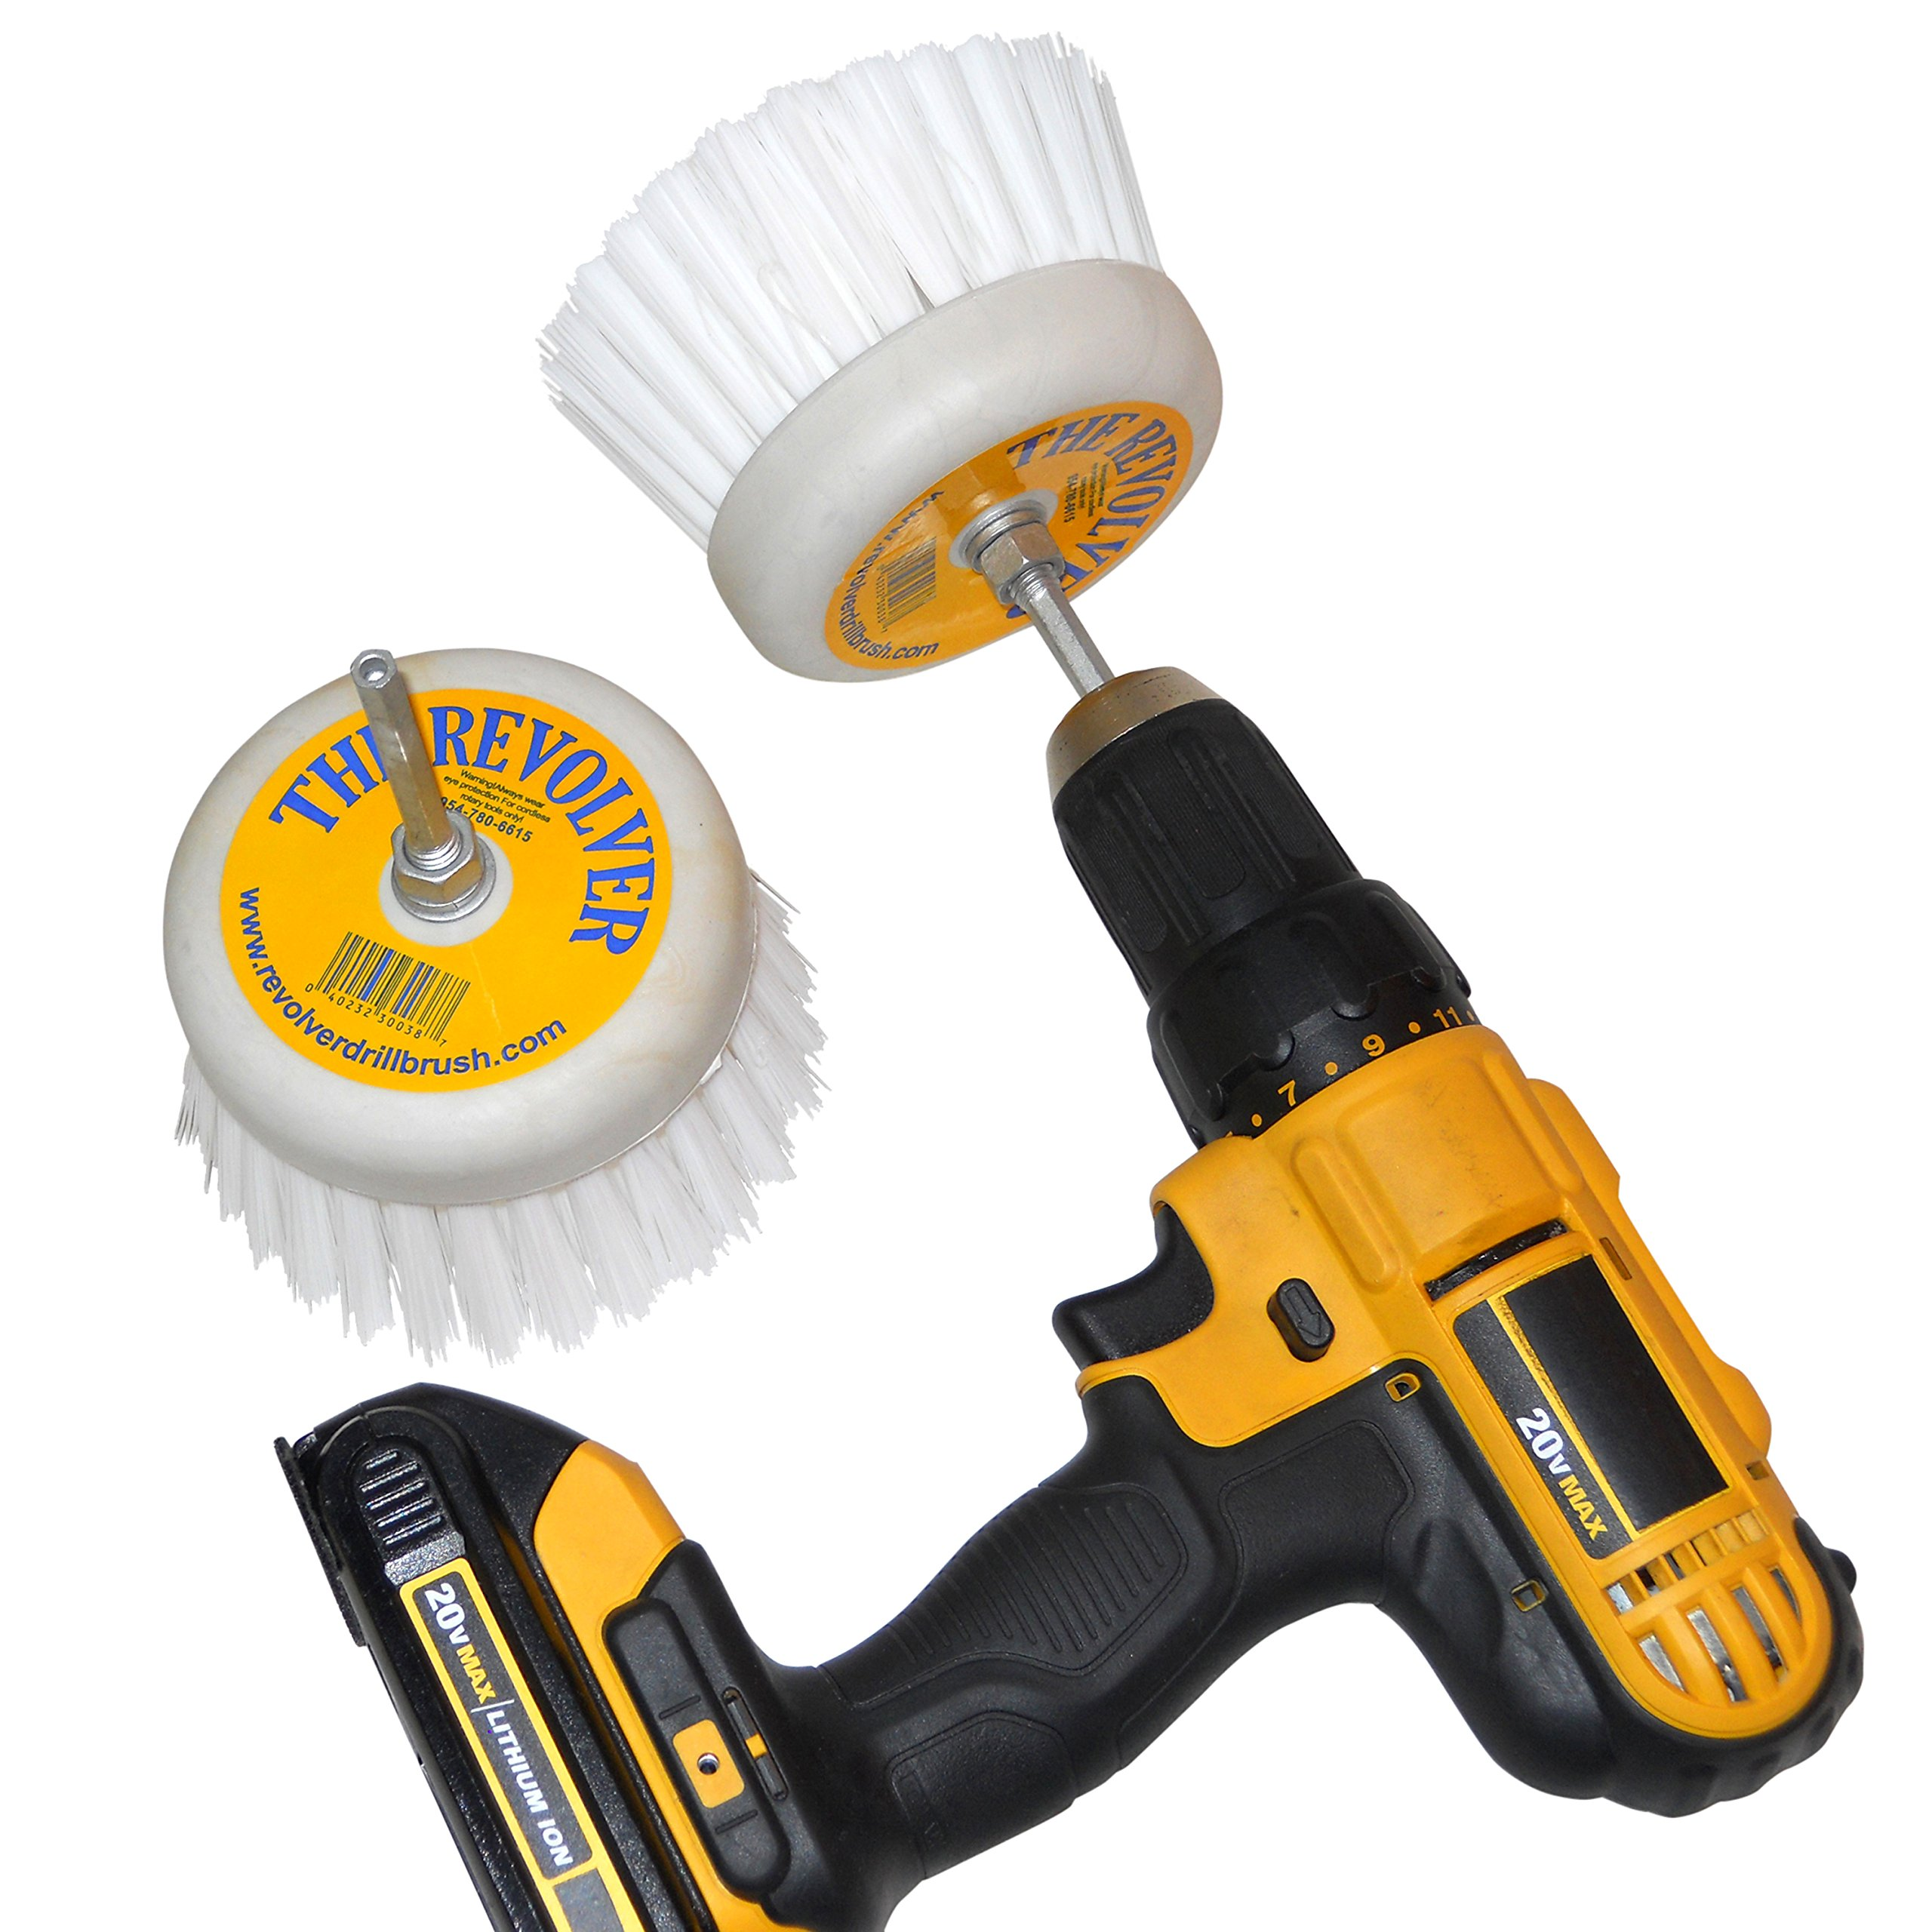 Revolver Drill Brush - Power Scrubbing Drill Attachment - Multi-Purpose Cleaning Tool (2 Pack) by Revolver Drill Brush (Image #2)